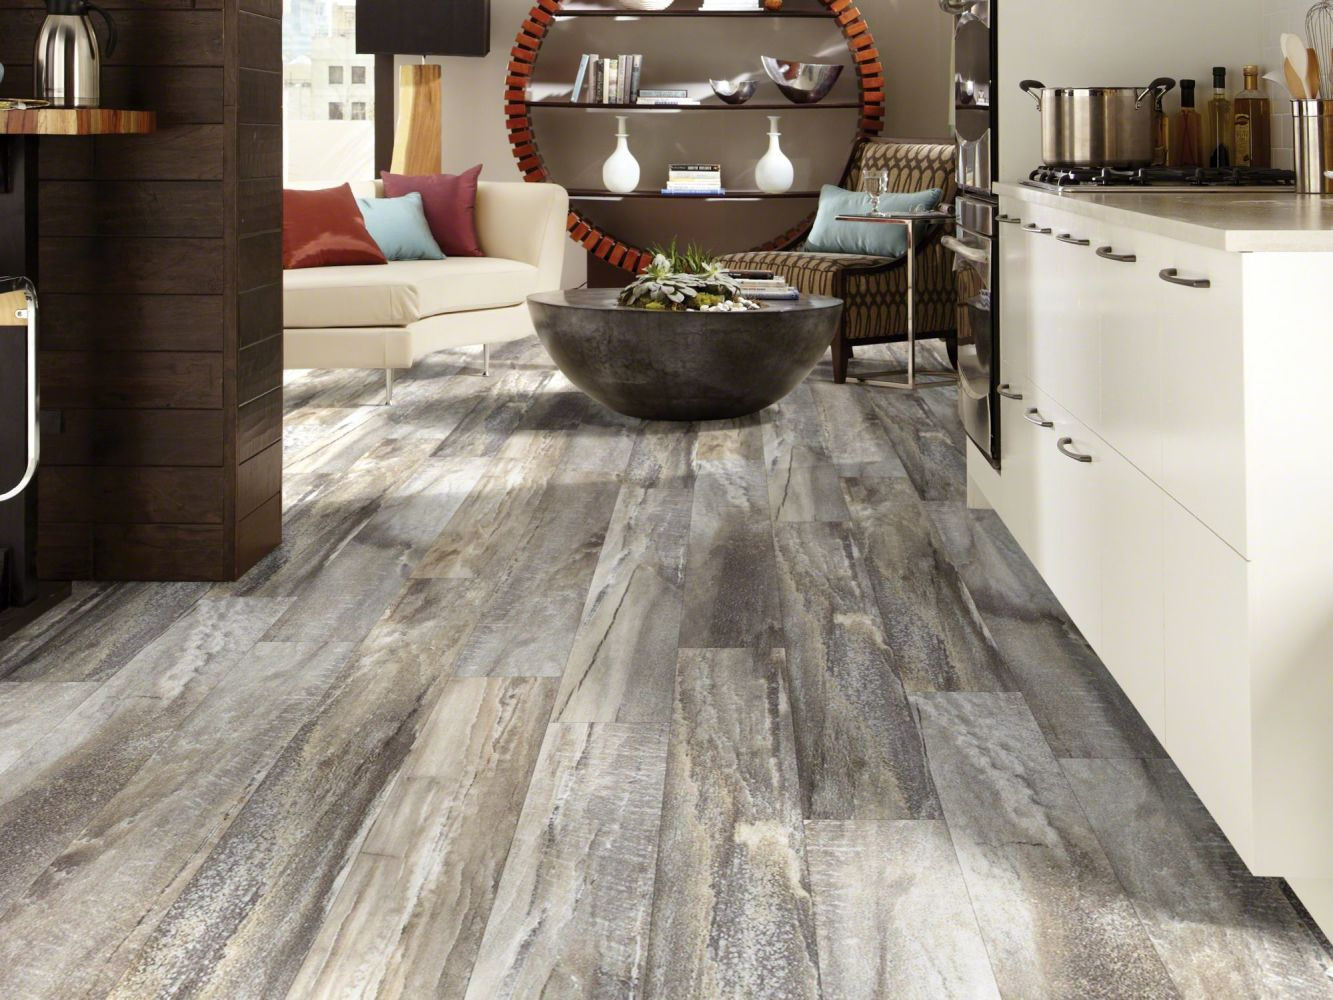 Shaw Floors Nfa Premier Gallery Resilient Amherst Five Spice 00546_VH530